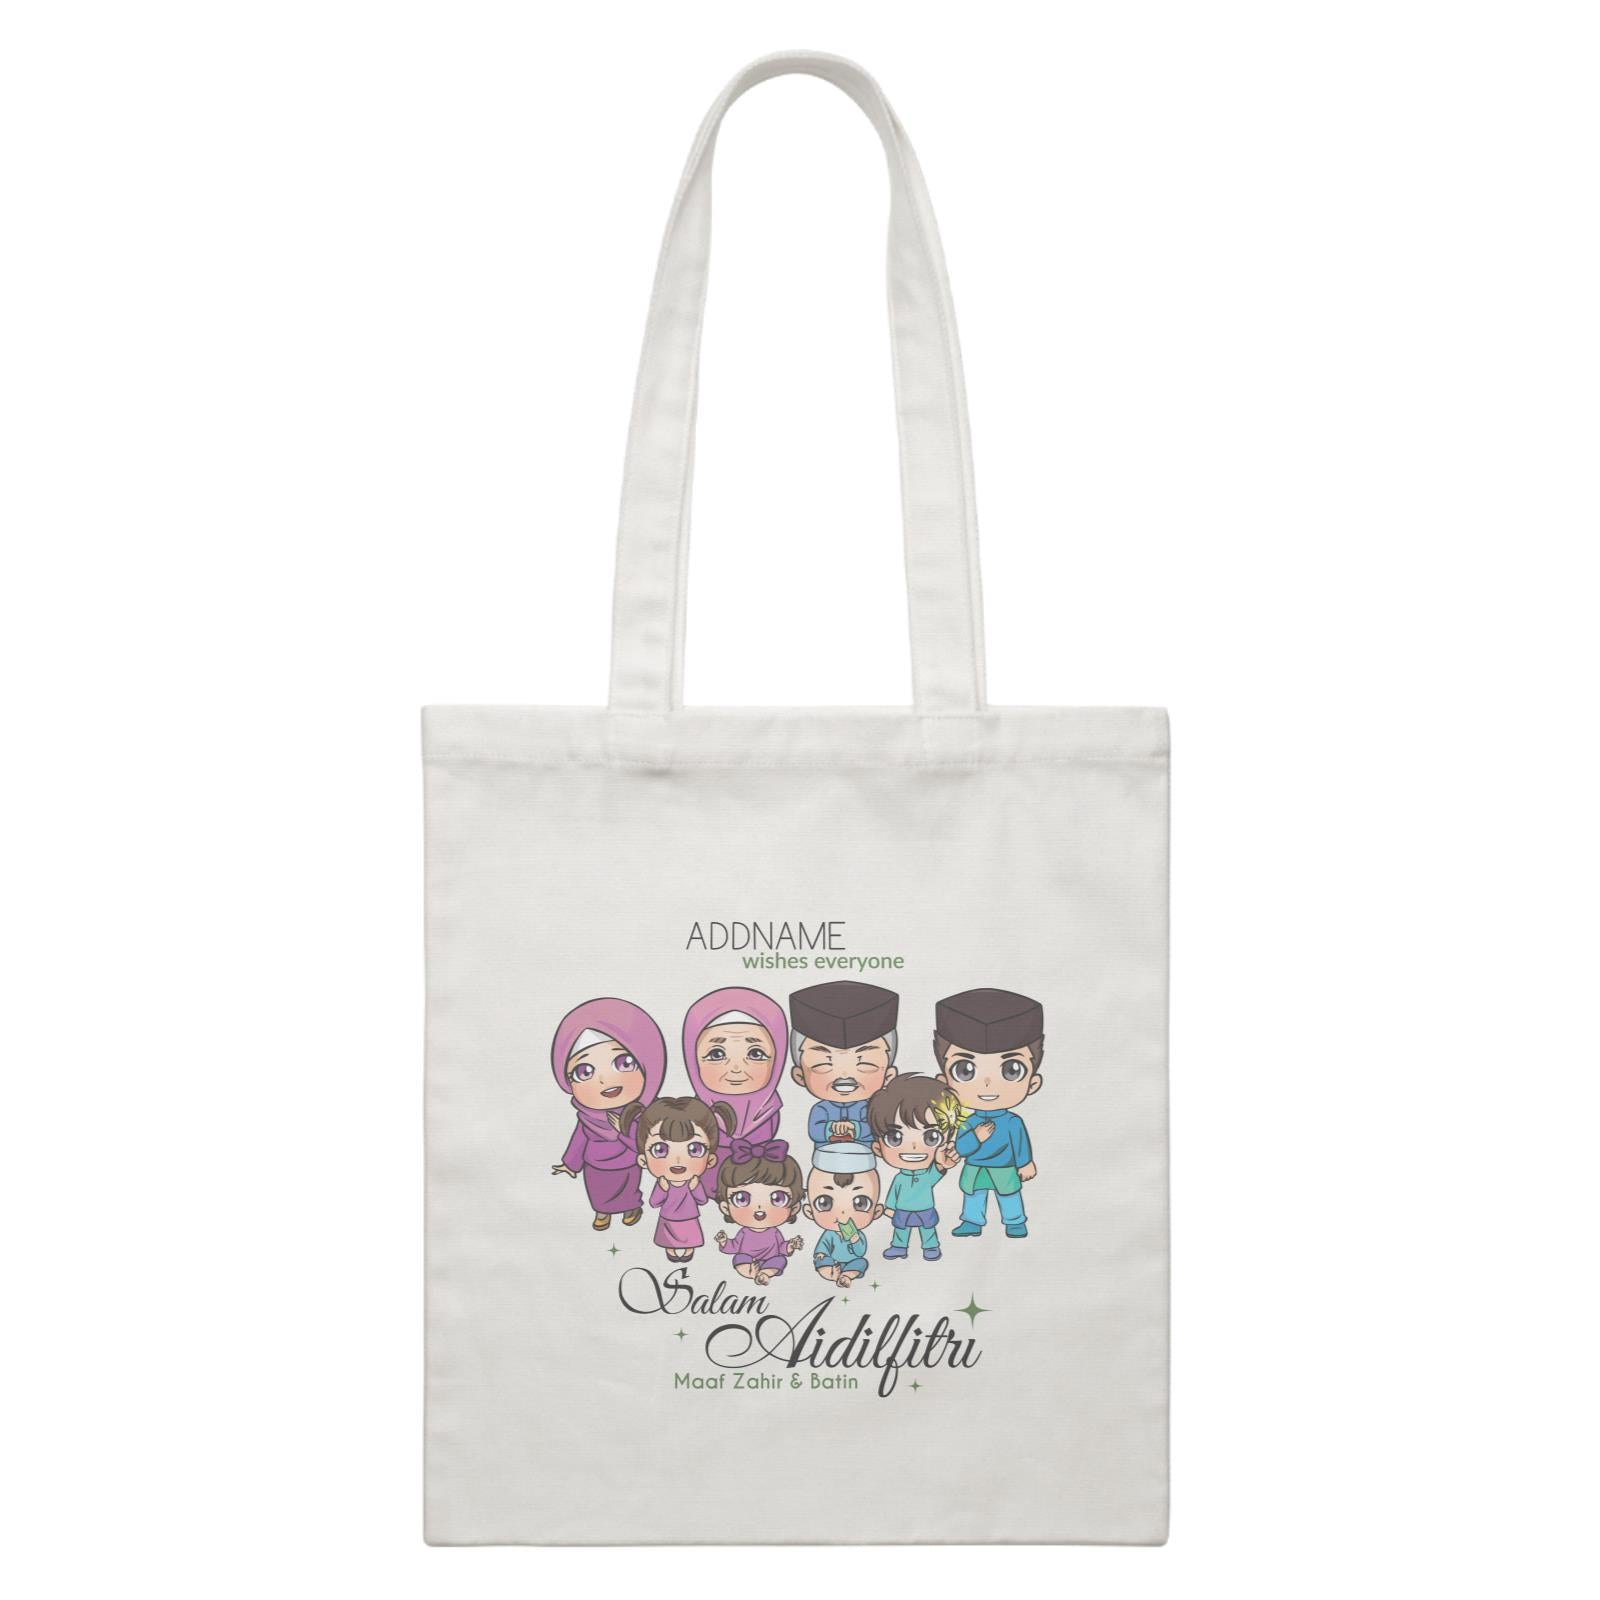 Raya Chibi Big Family Addname Wishes Everyone Salam Aidilfitri Maaf Zahir & Batin White Canvas Bag